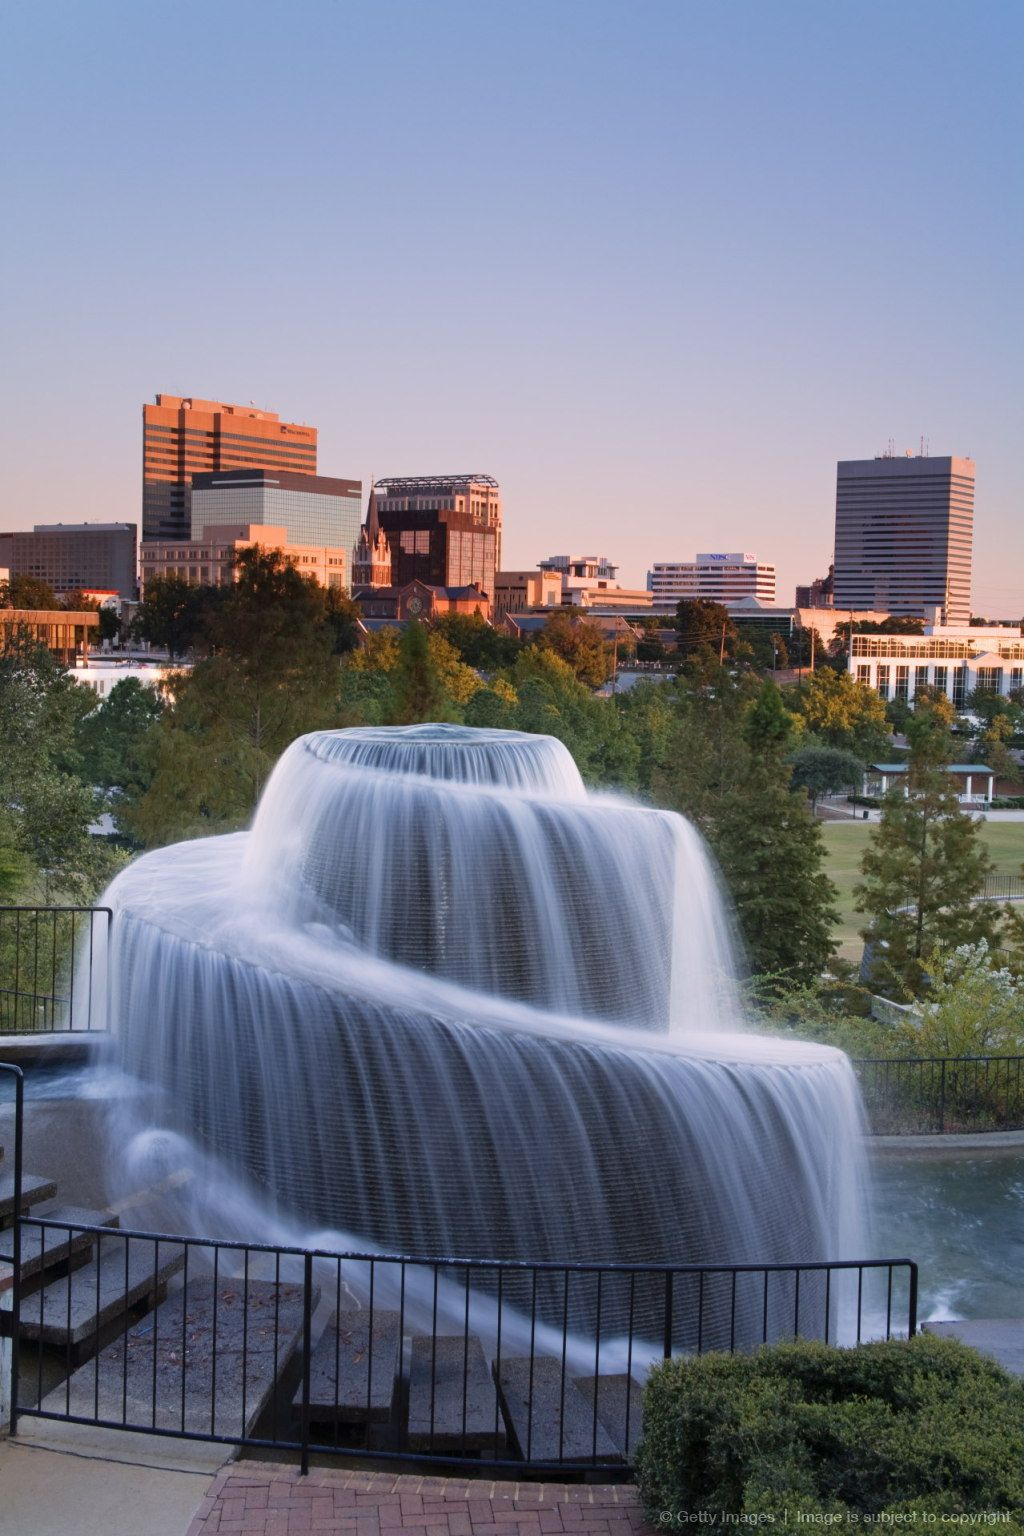 finlay park fountain columbia south carolina united states of america north america mehr - Waterfall Fountain